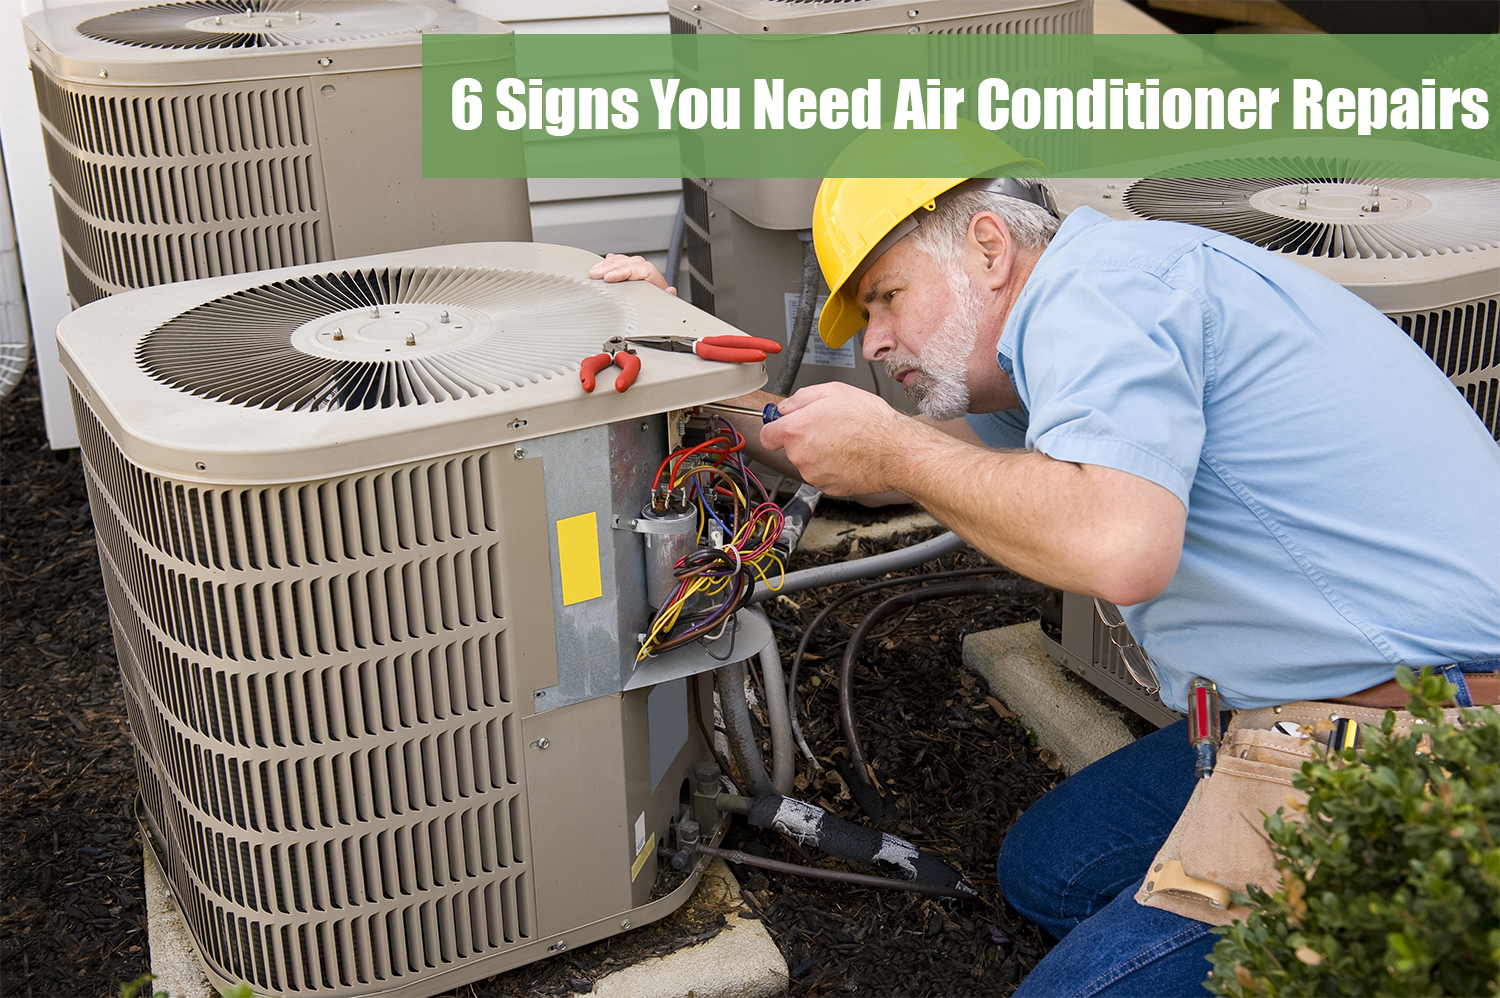 Ac technician in a blue shirt and yellow hard hat performing air conditioner repairs on an outdoor unit.